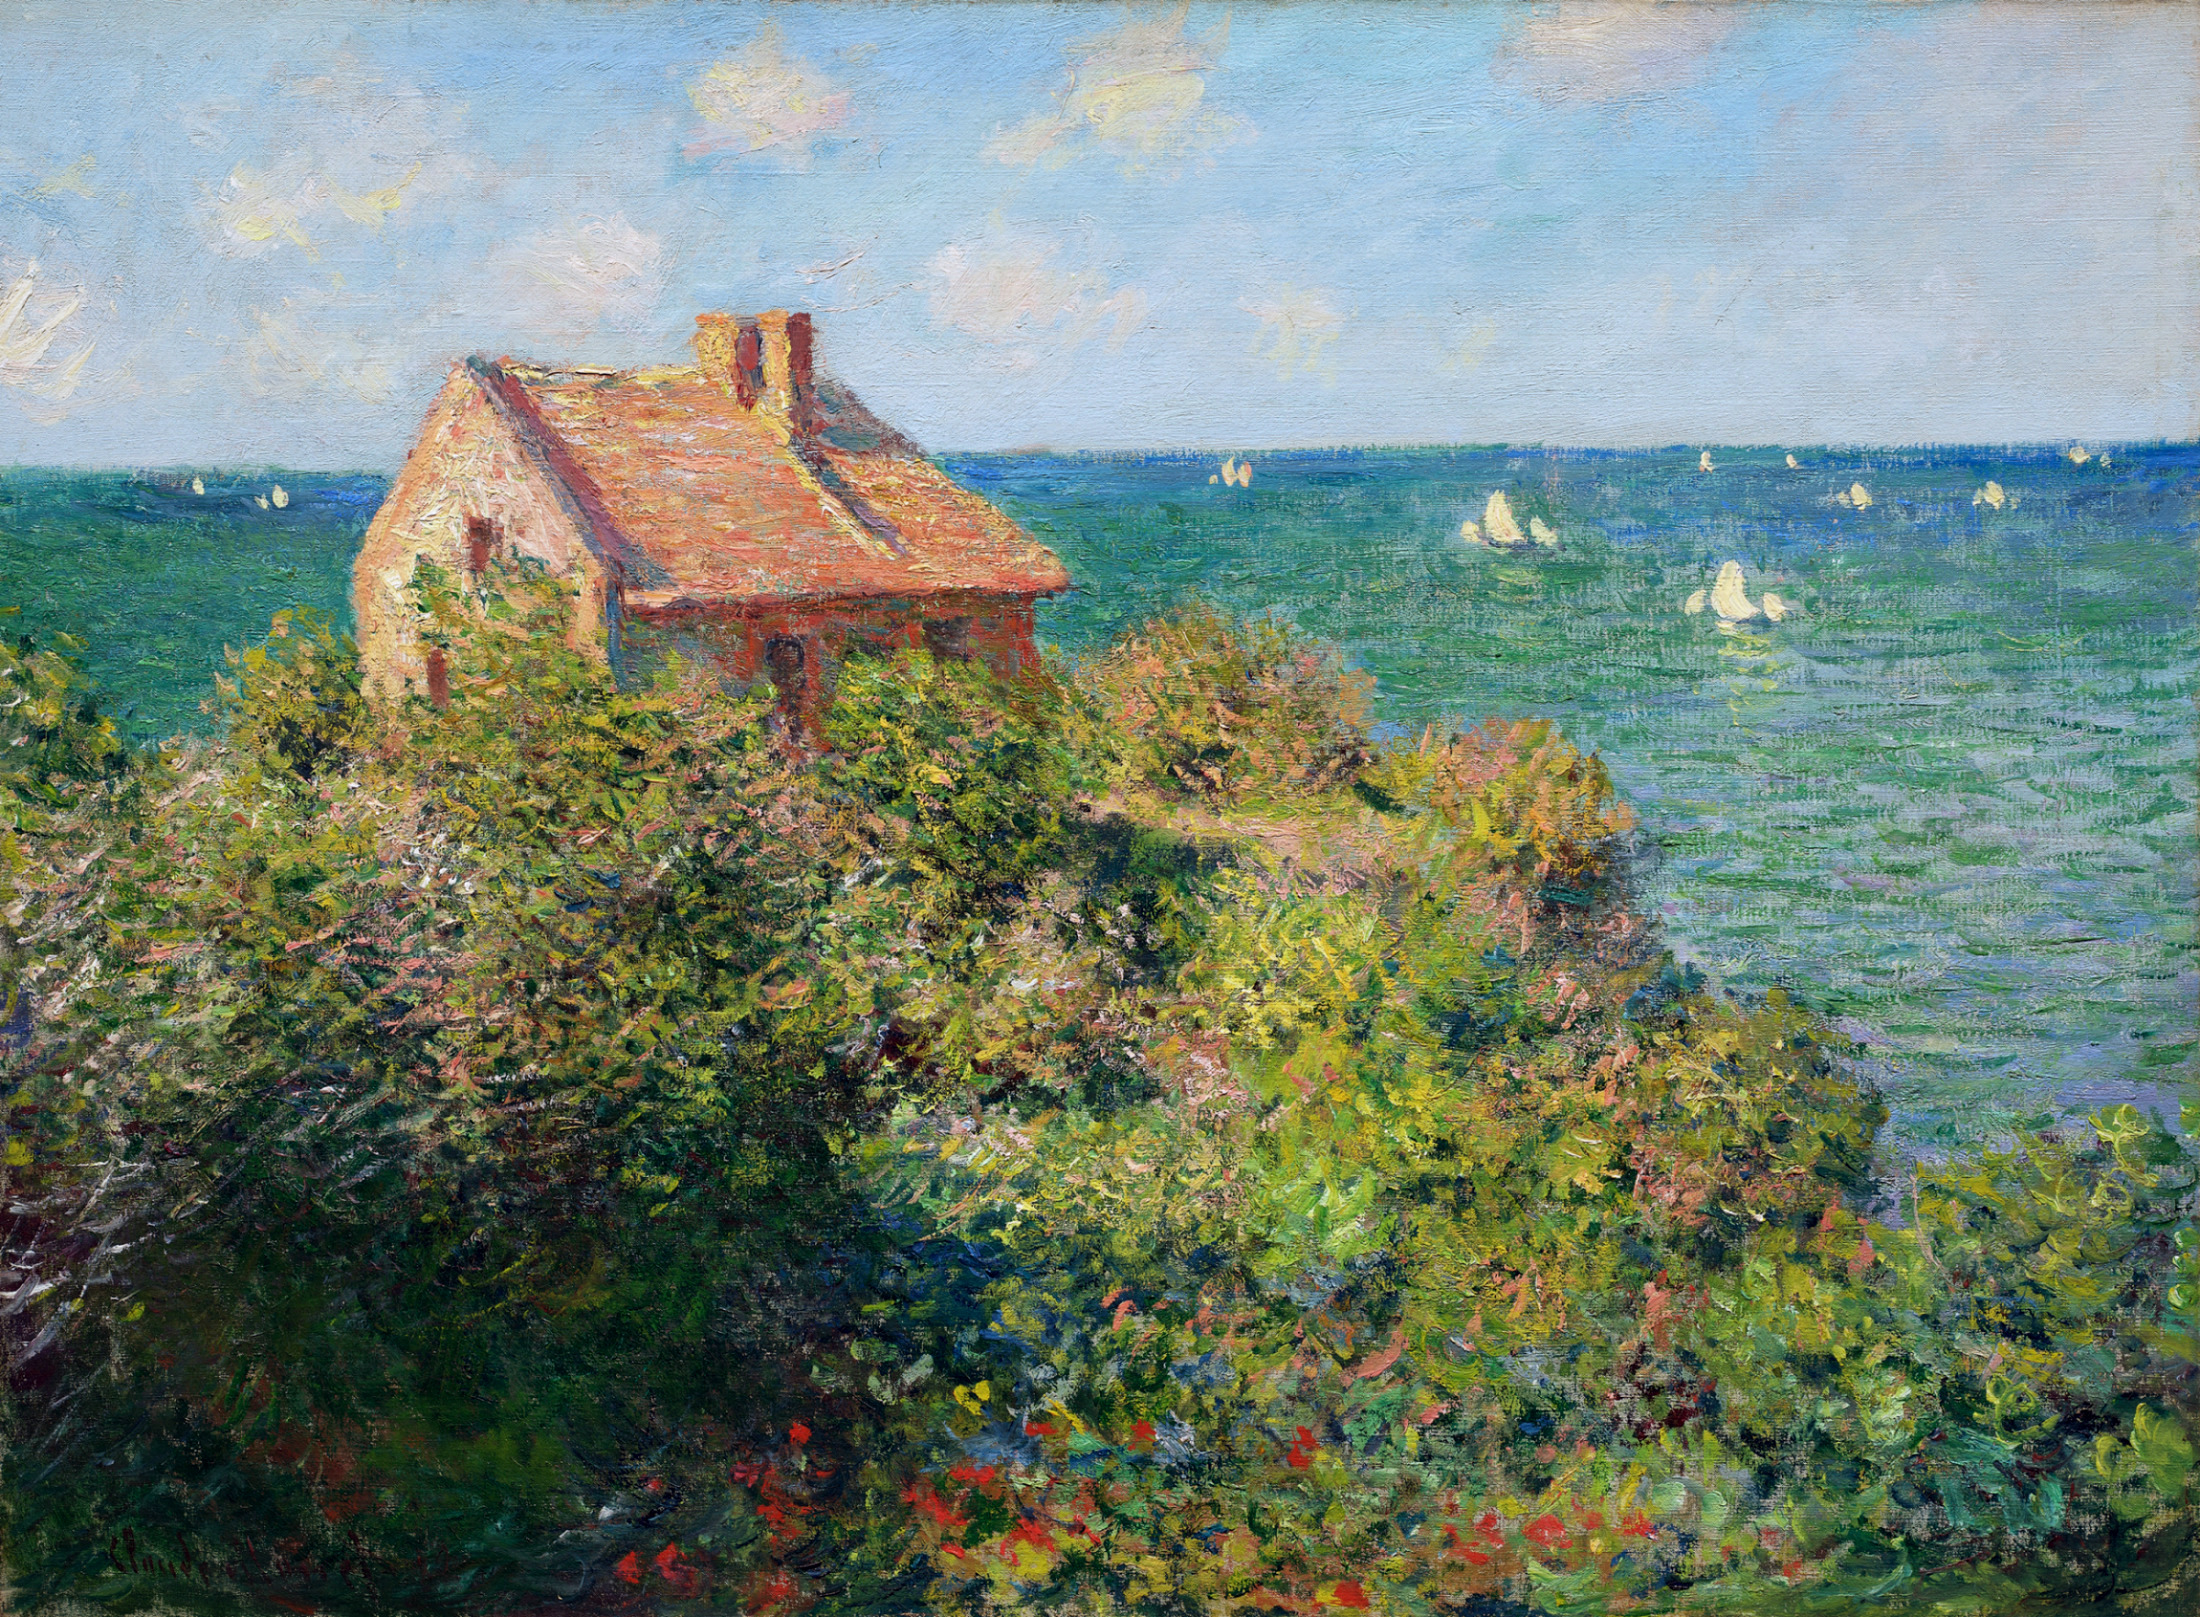 Fisherman 39 s cottage at varengeville claude monet encyclopedia of visual arts - The fishermans cottage ...